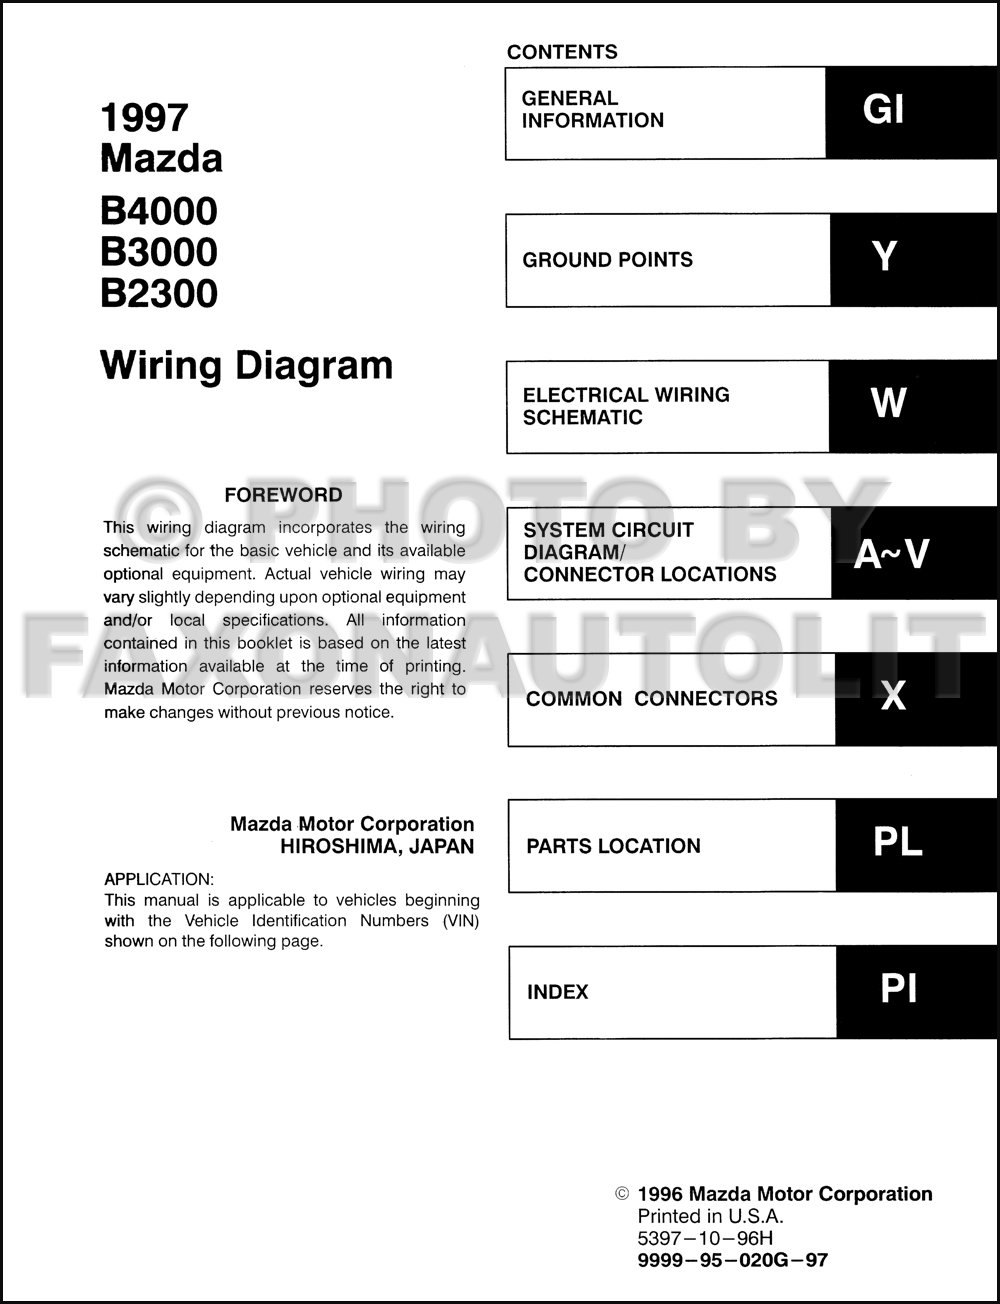 1994 mazda b4000 wiring diagram 1994 image wiring 1997 mazda b4000 b3000 b2300 pickup truck wiring diagram manual on 1994 mazda b4000 wiring diagram